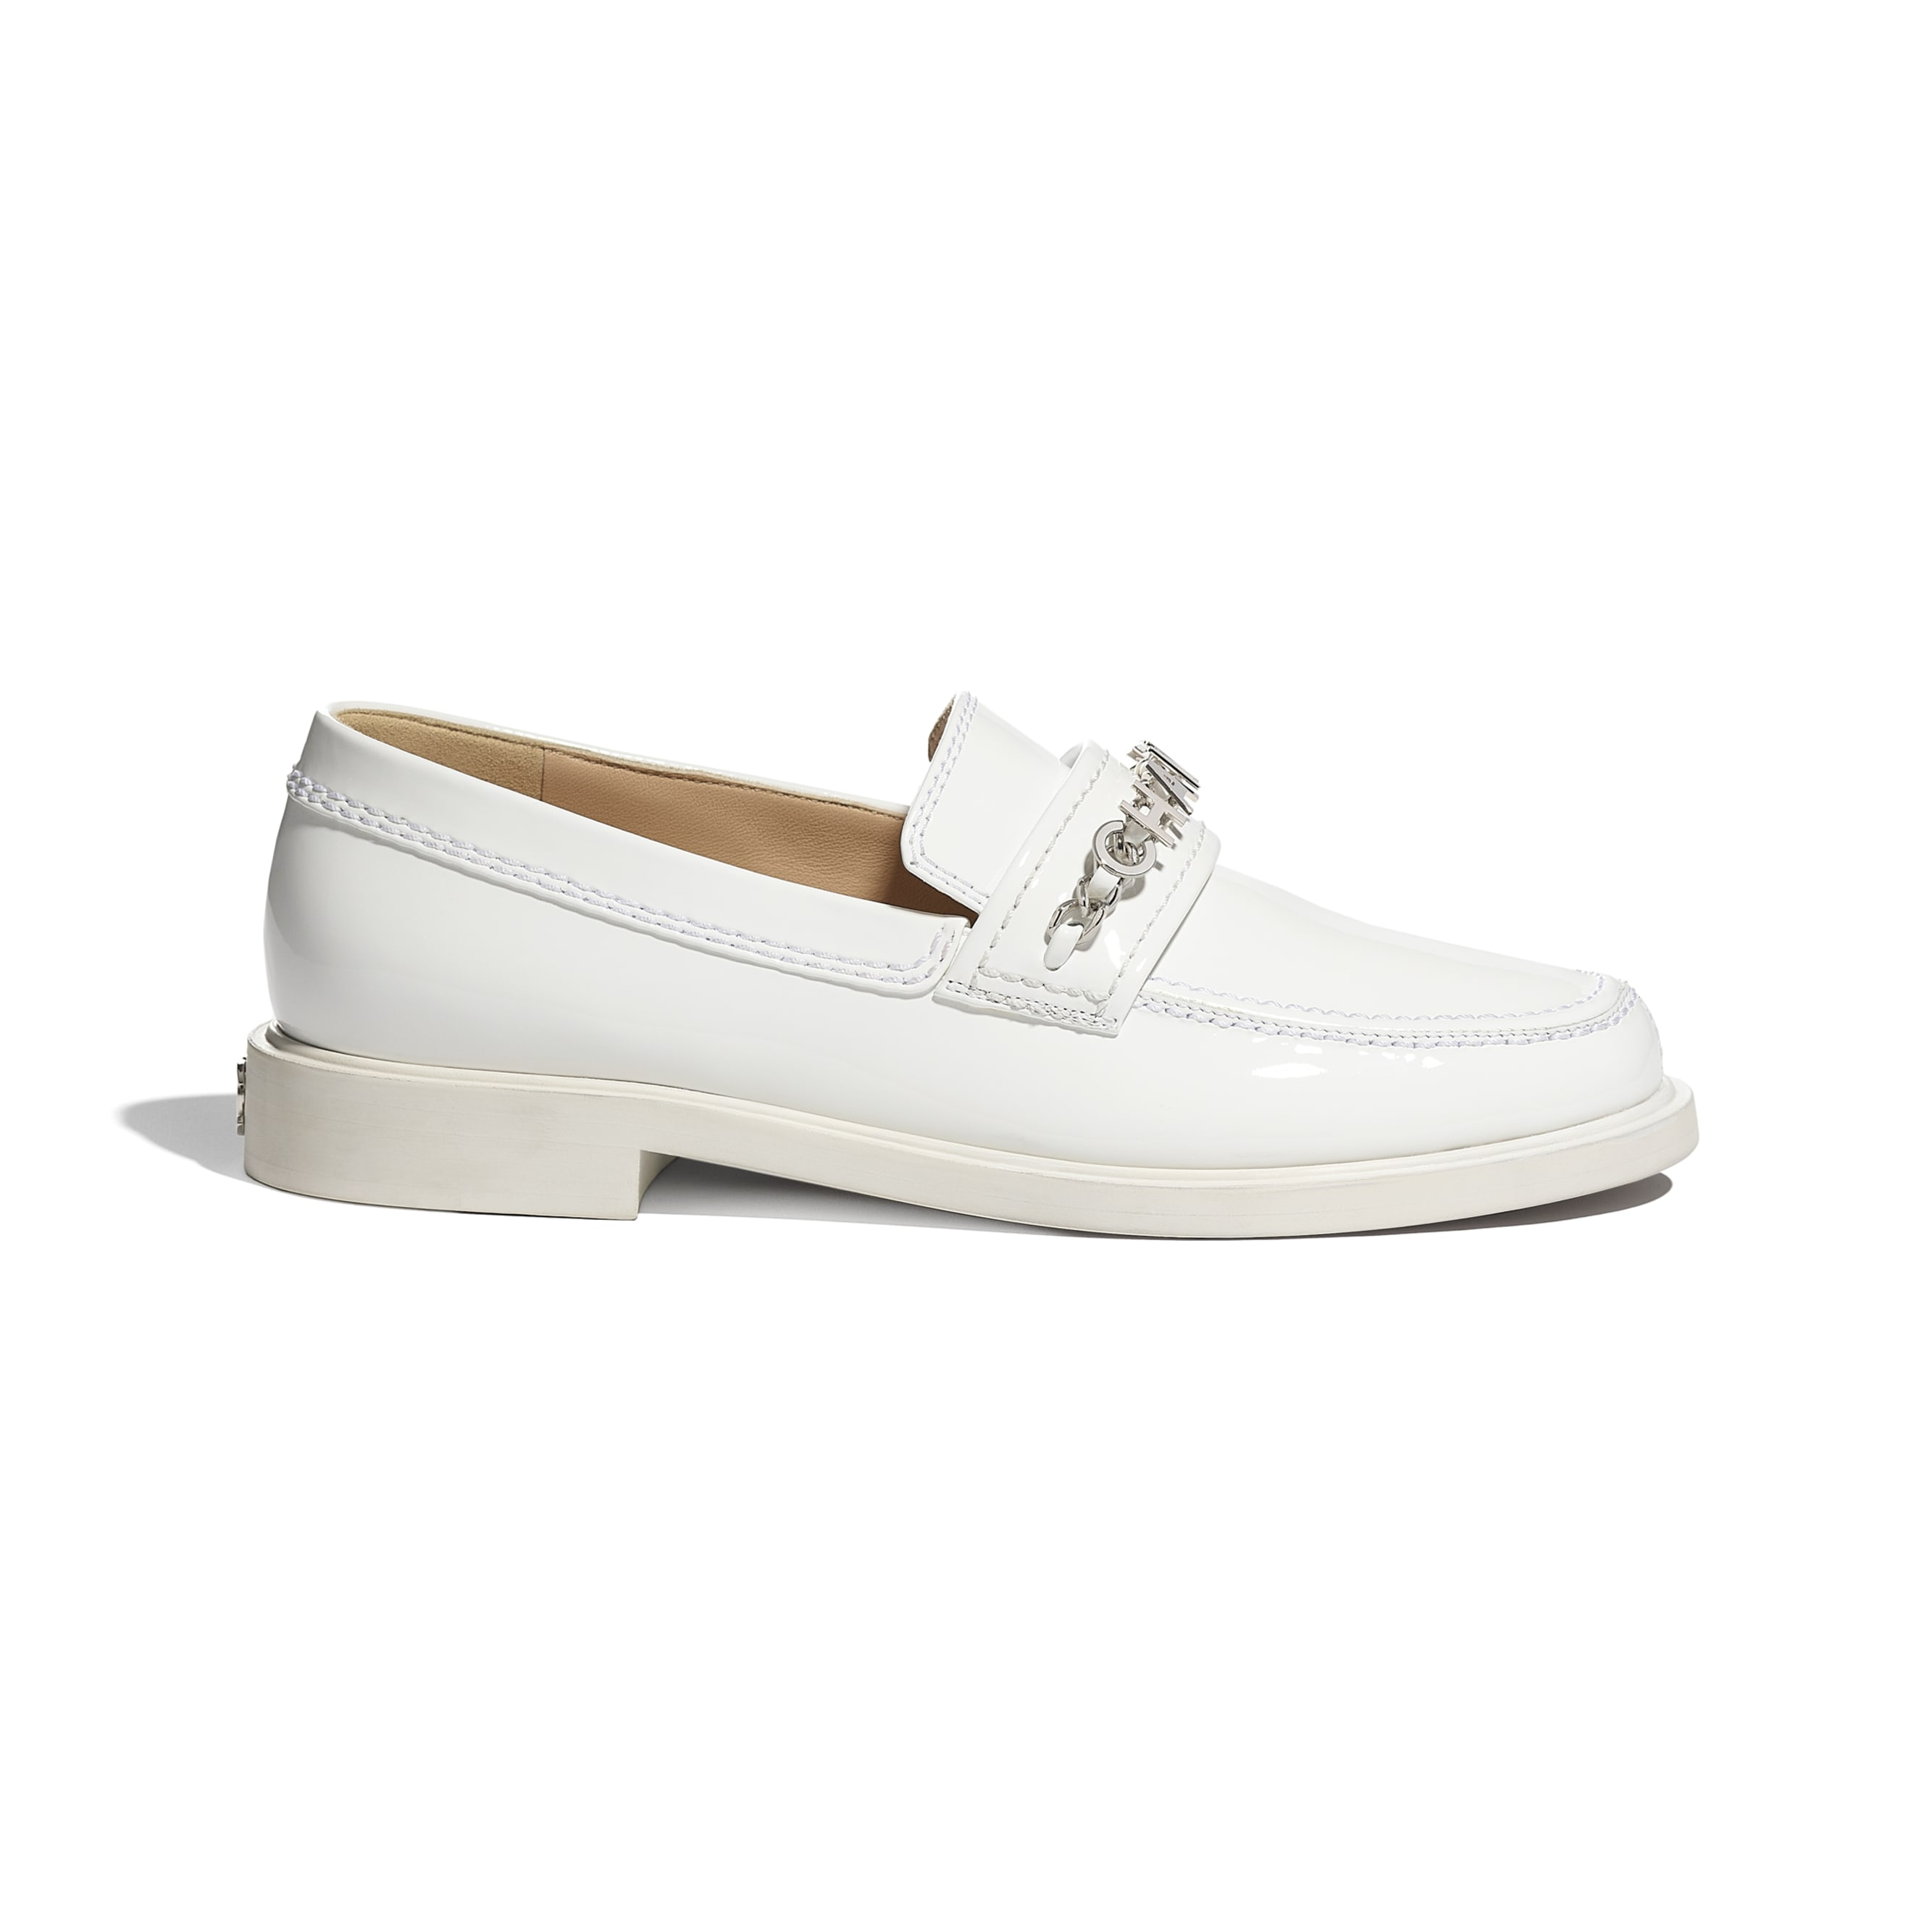 Loafers - White - Patent Calfskin - CHANEL - Default view - see standard sized version